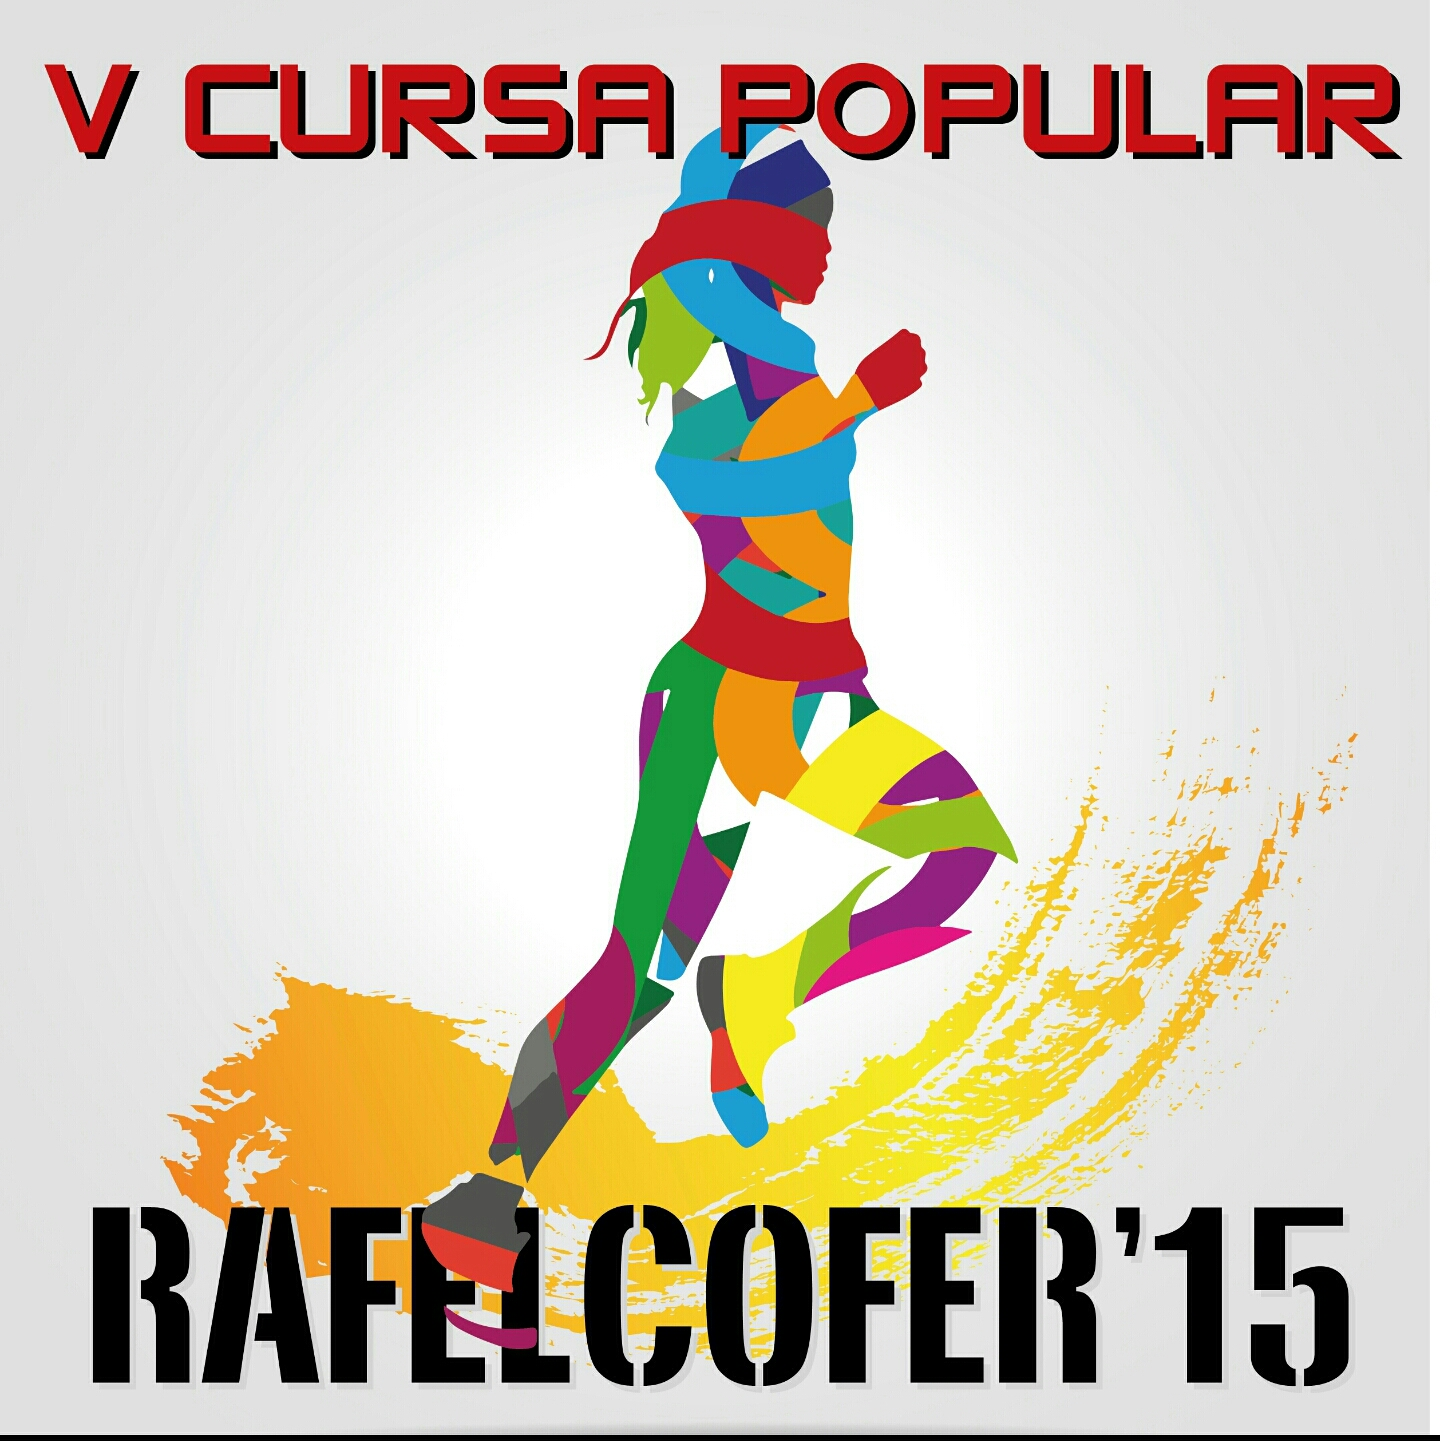 V Cursa Popular  Rafelcofer